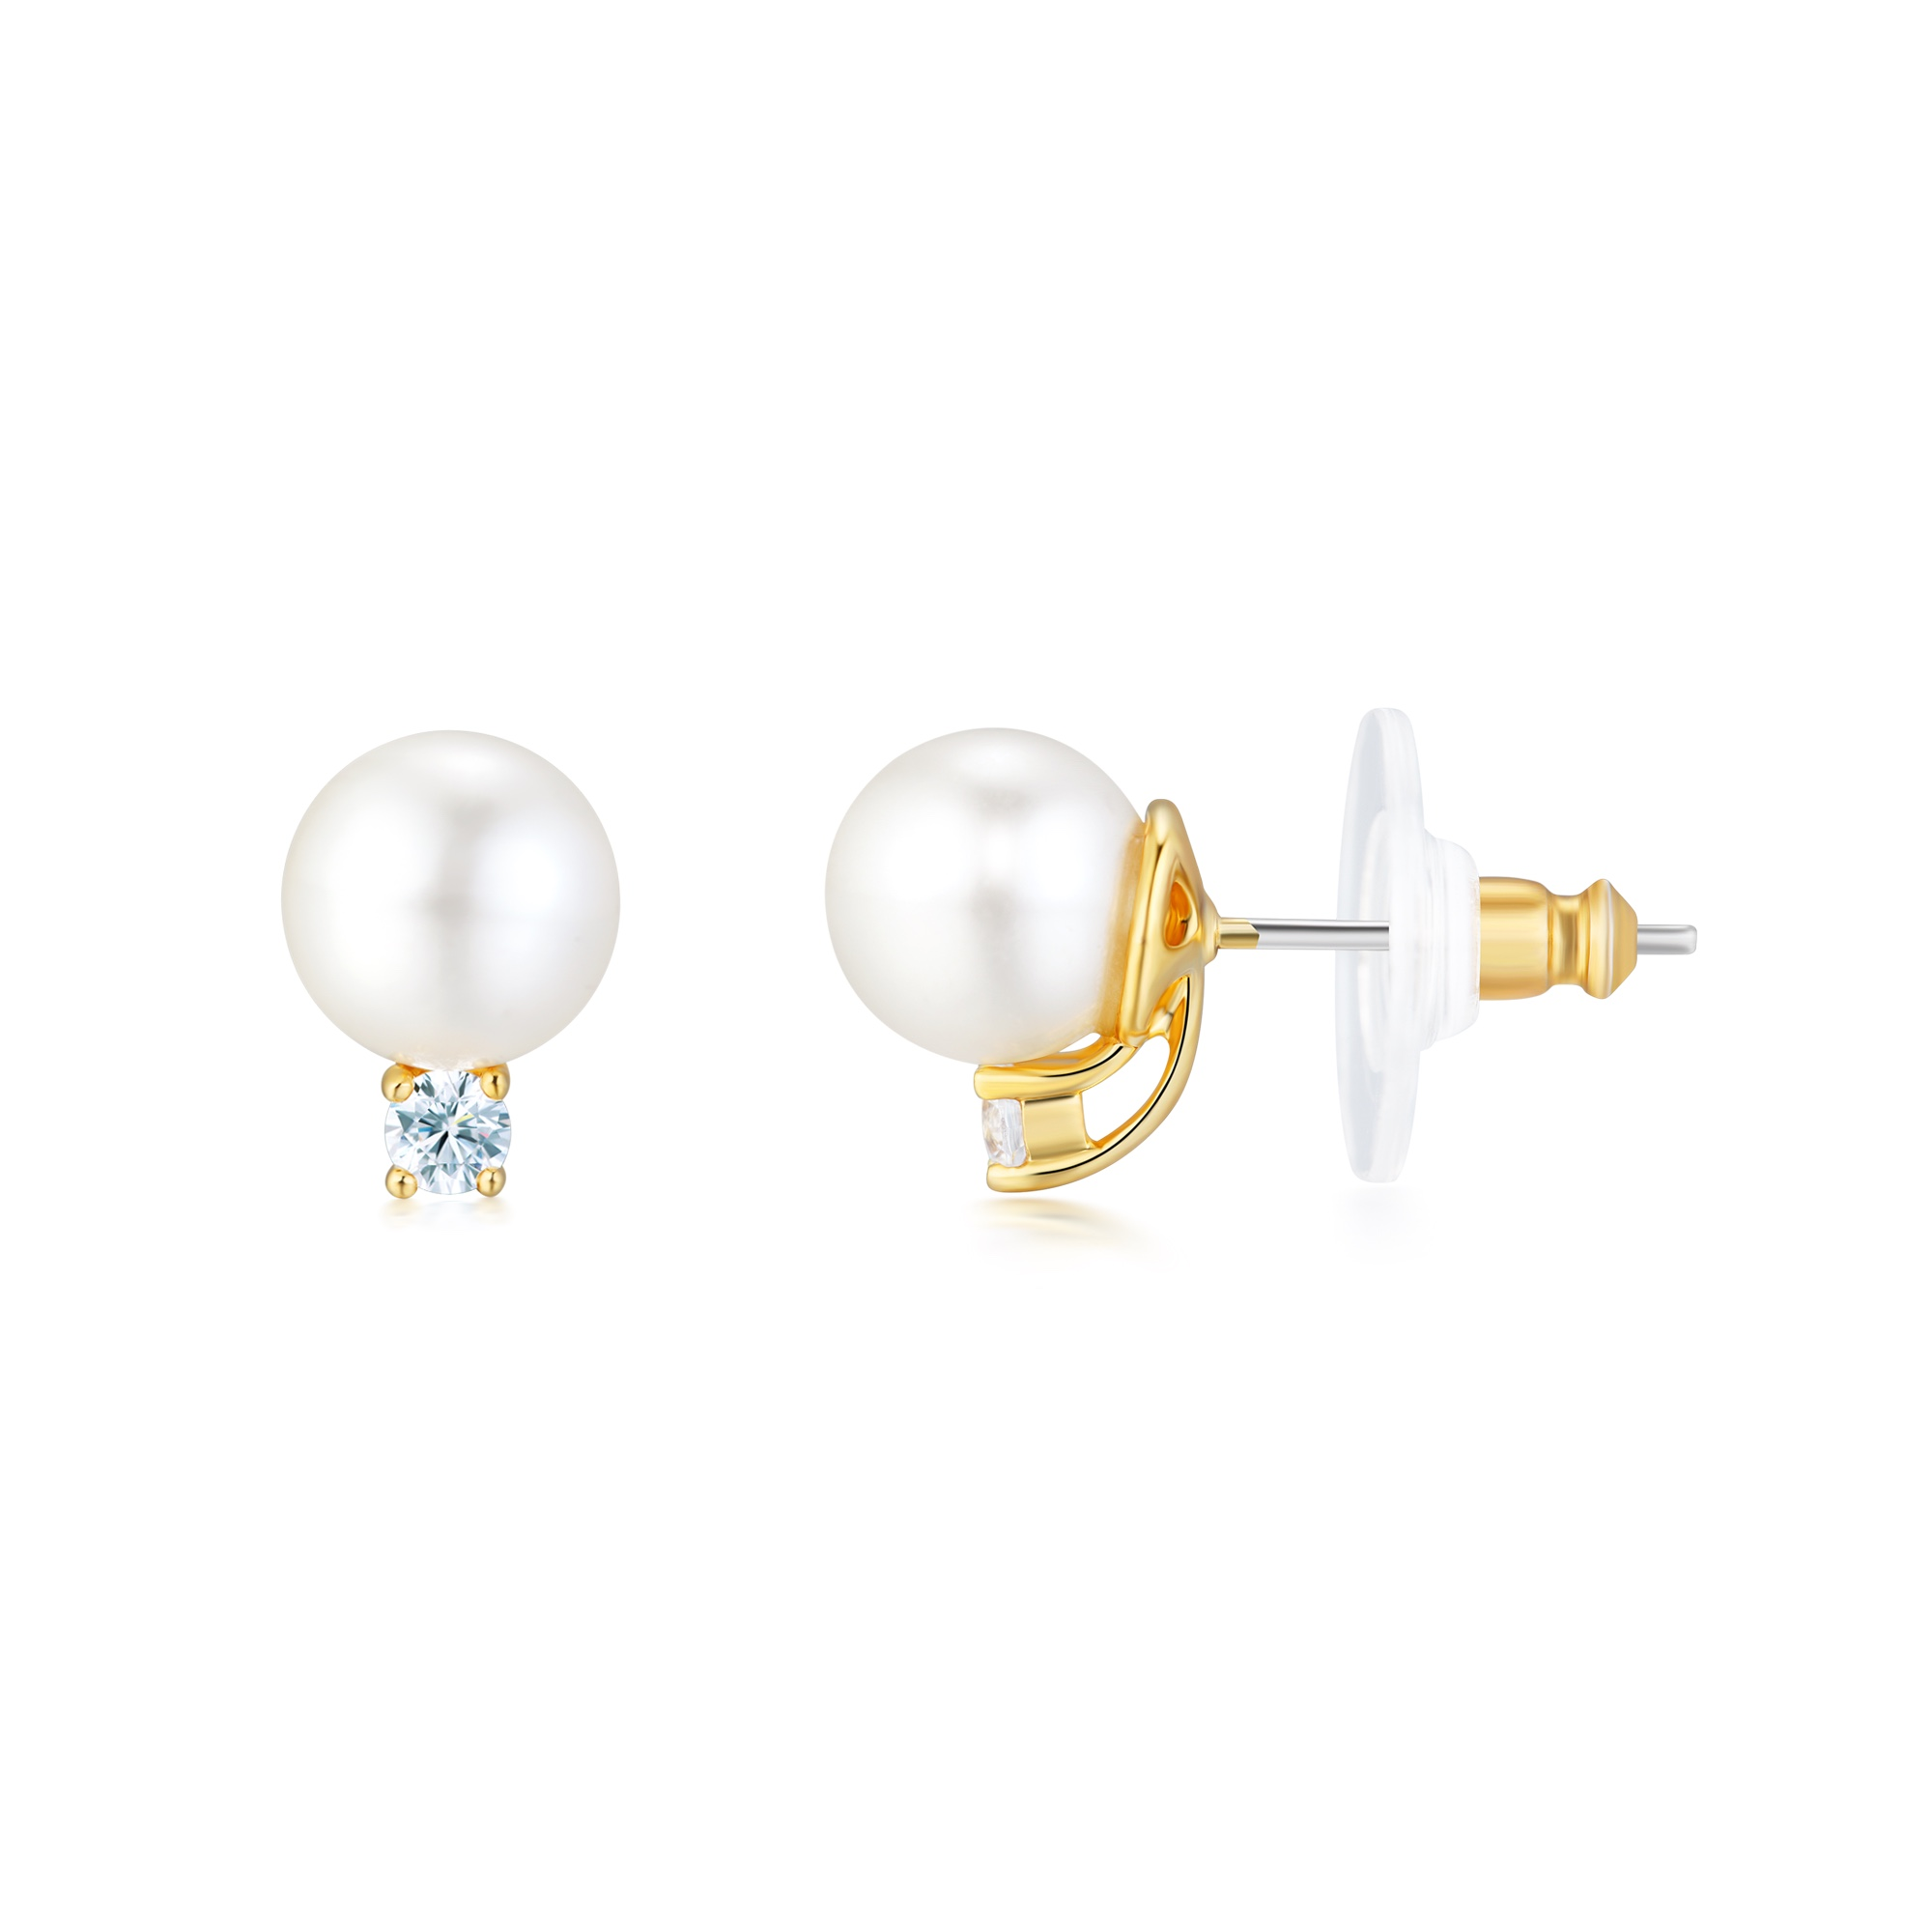 crafted jewelry necklaces finely tahitian collection stud earrings tara pearls real pearl galaxy